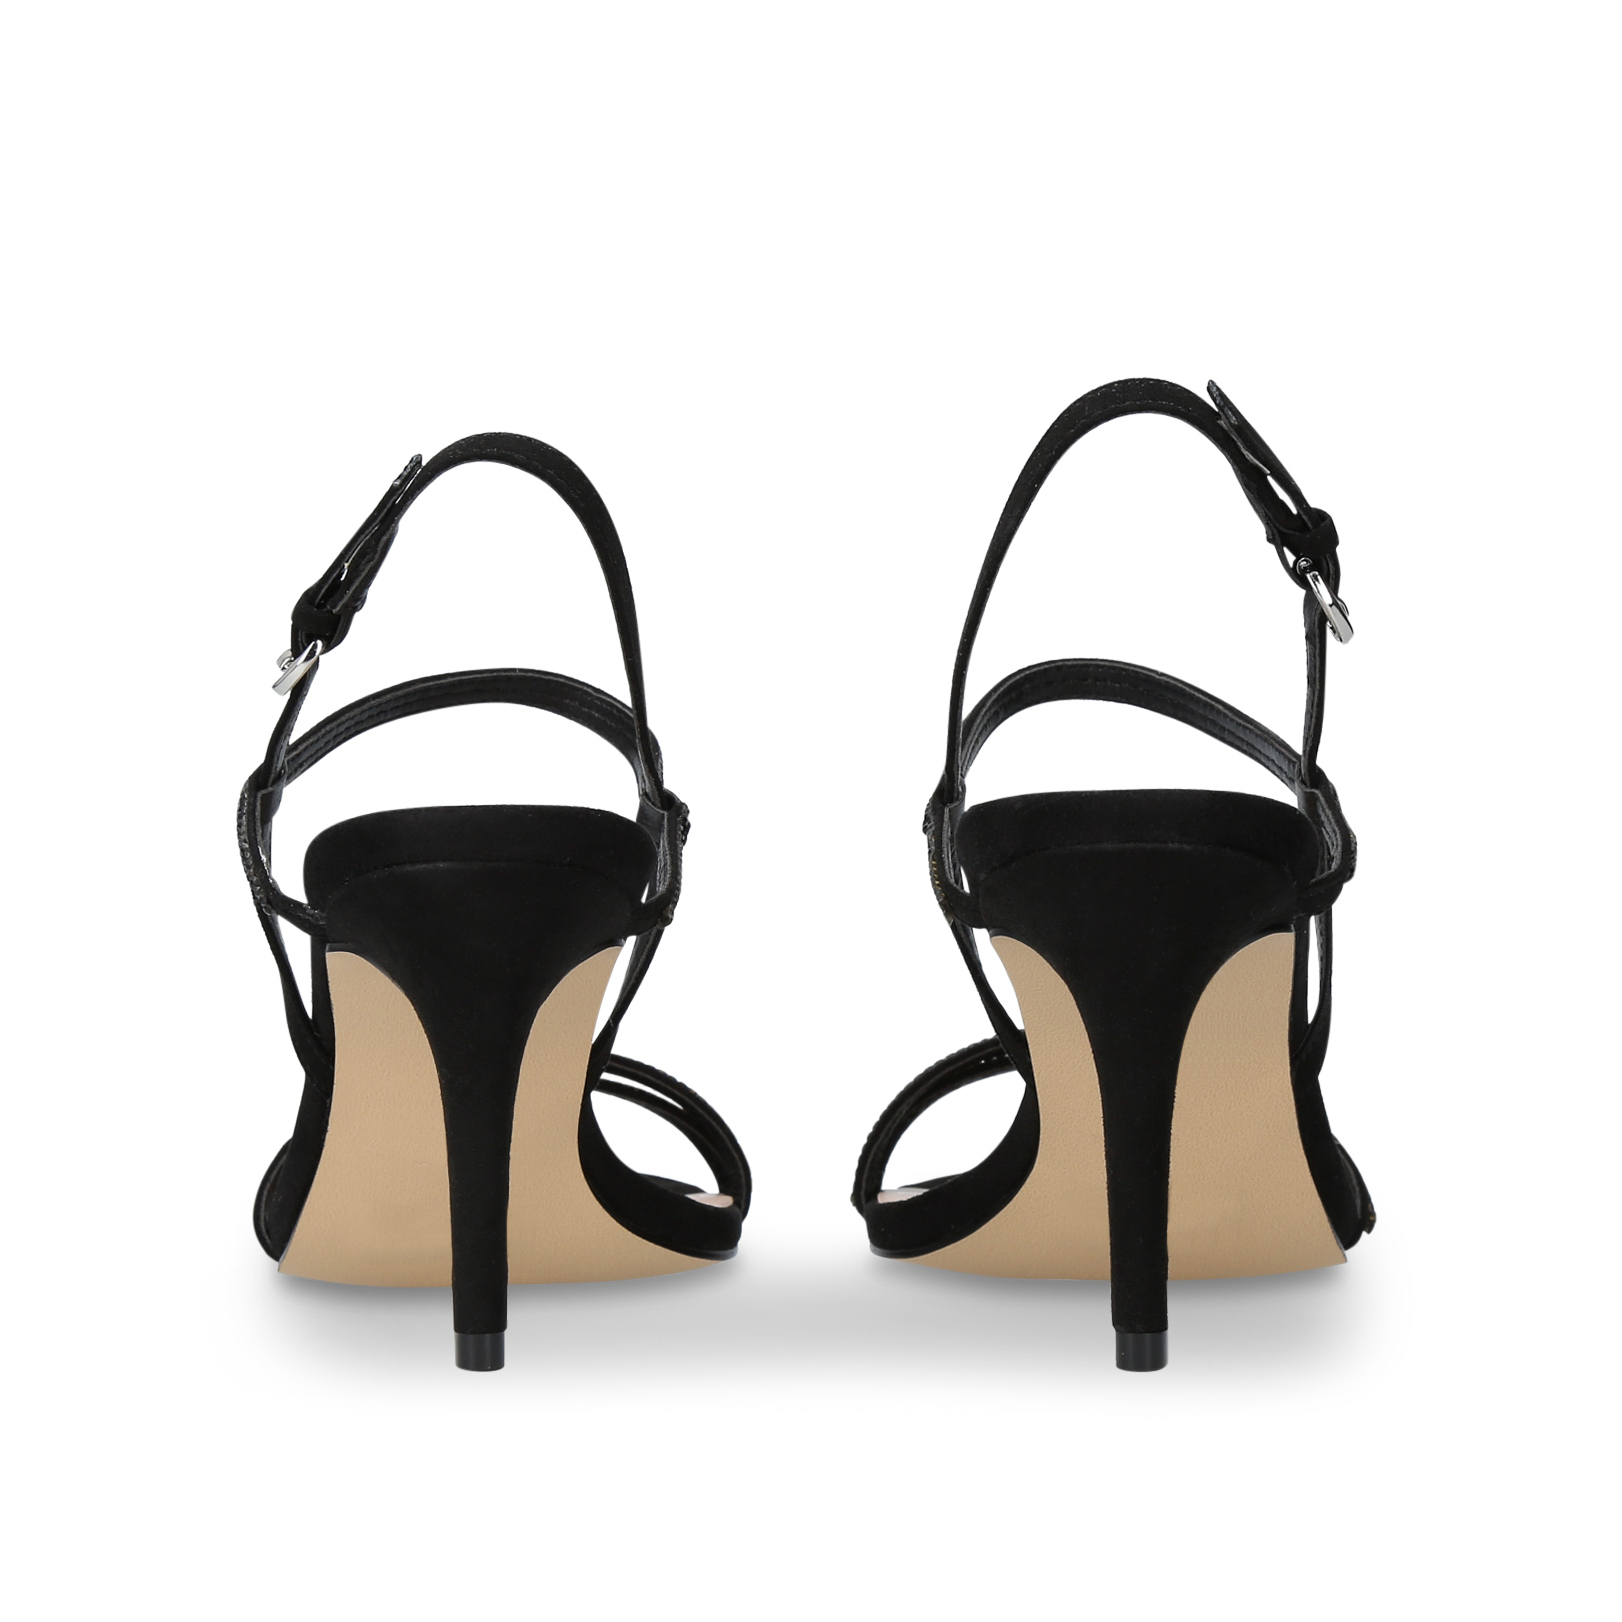 a47f7ced8954 DELILAH - NINE WEST Casuals